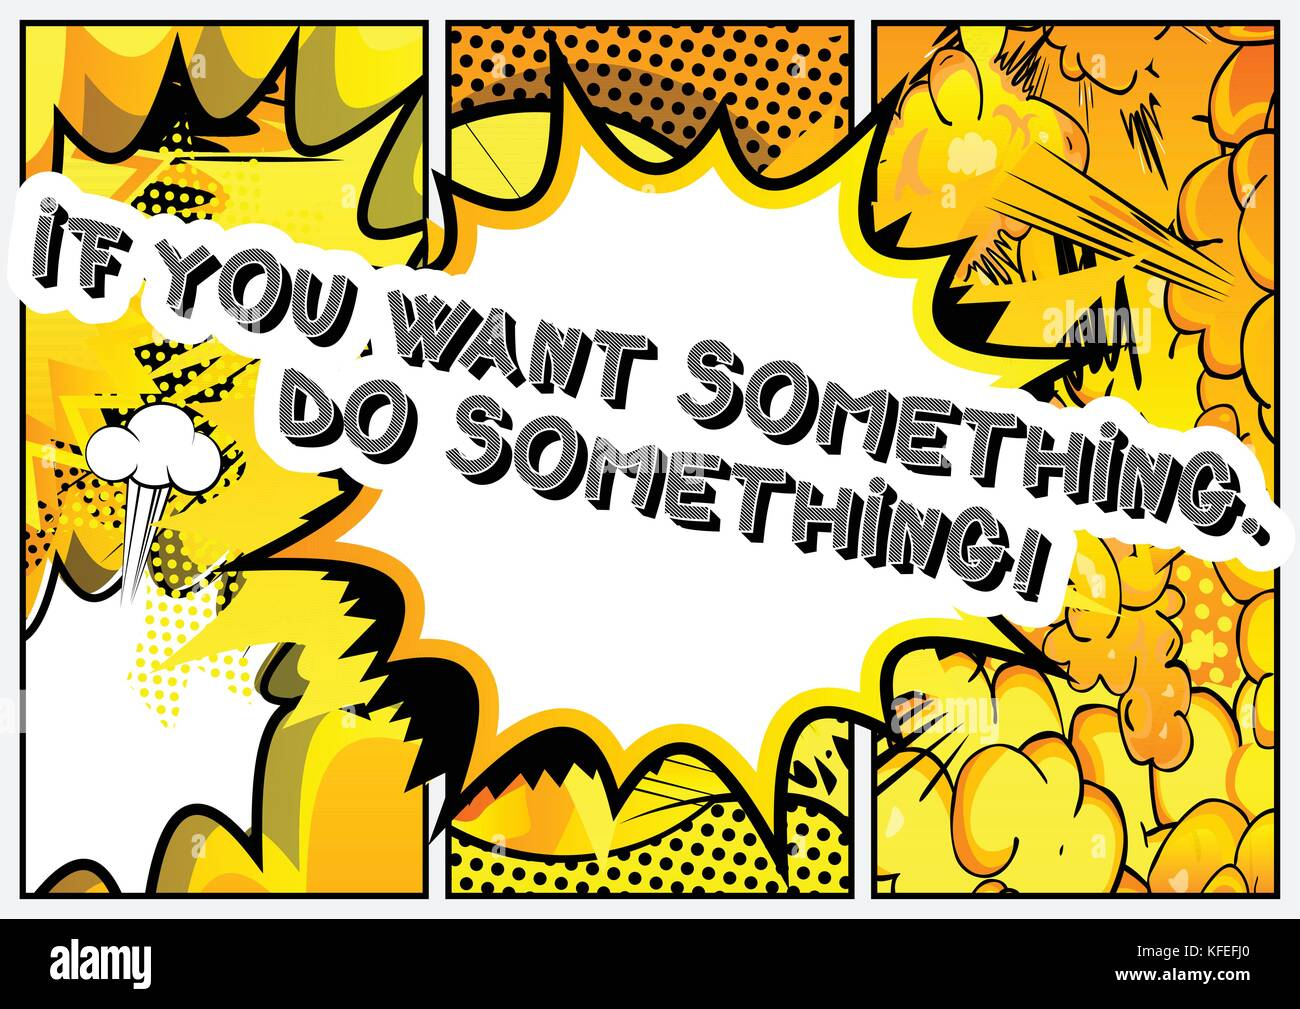 If you want something. Do something! Vector illustrated comic book style design. Inspirational, motivational quote. - Stock Vector